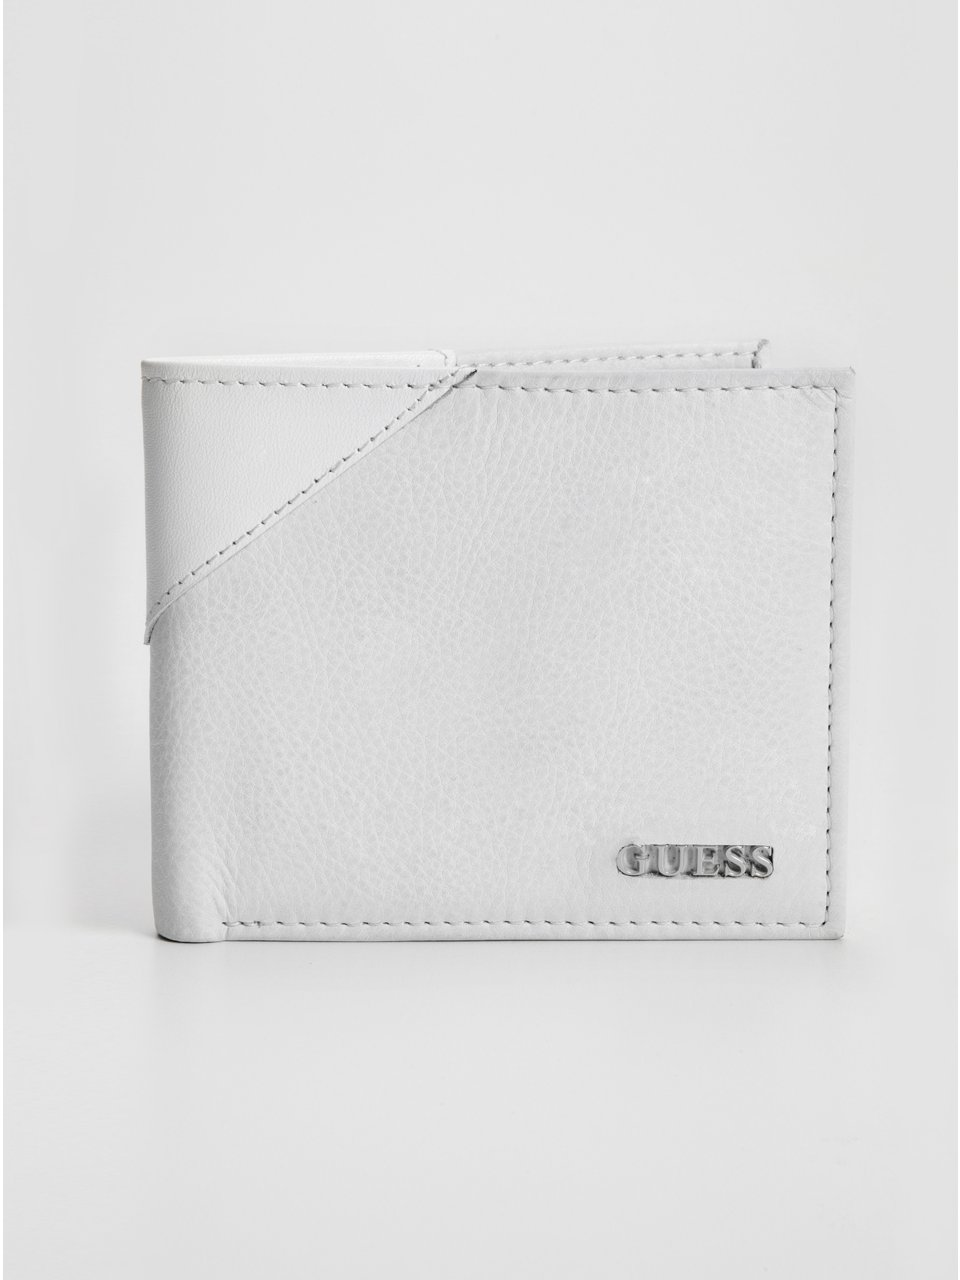 GUESS Cow Passcase Wallet, WHITE